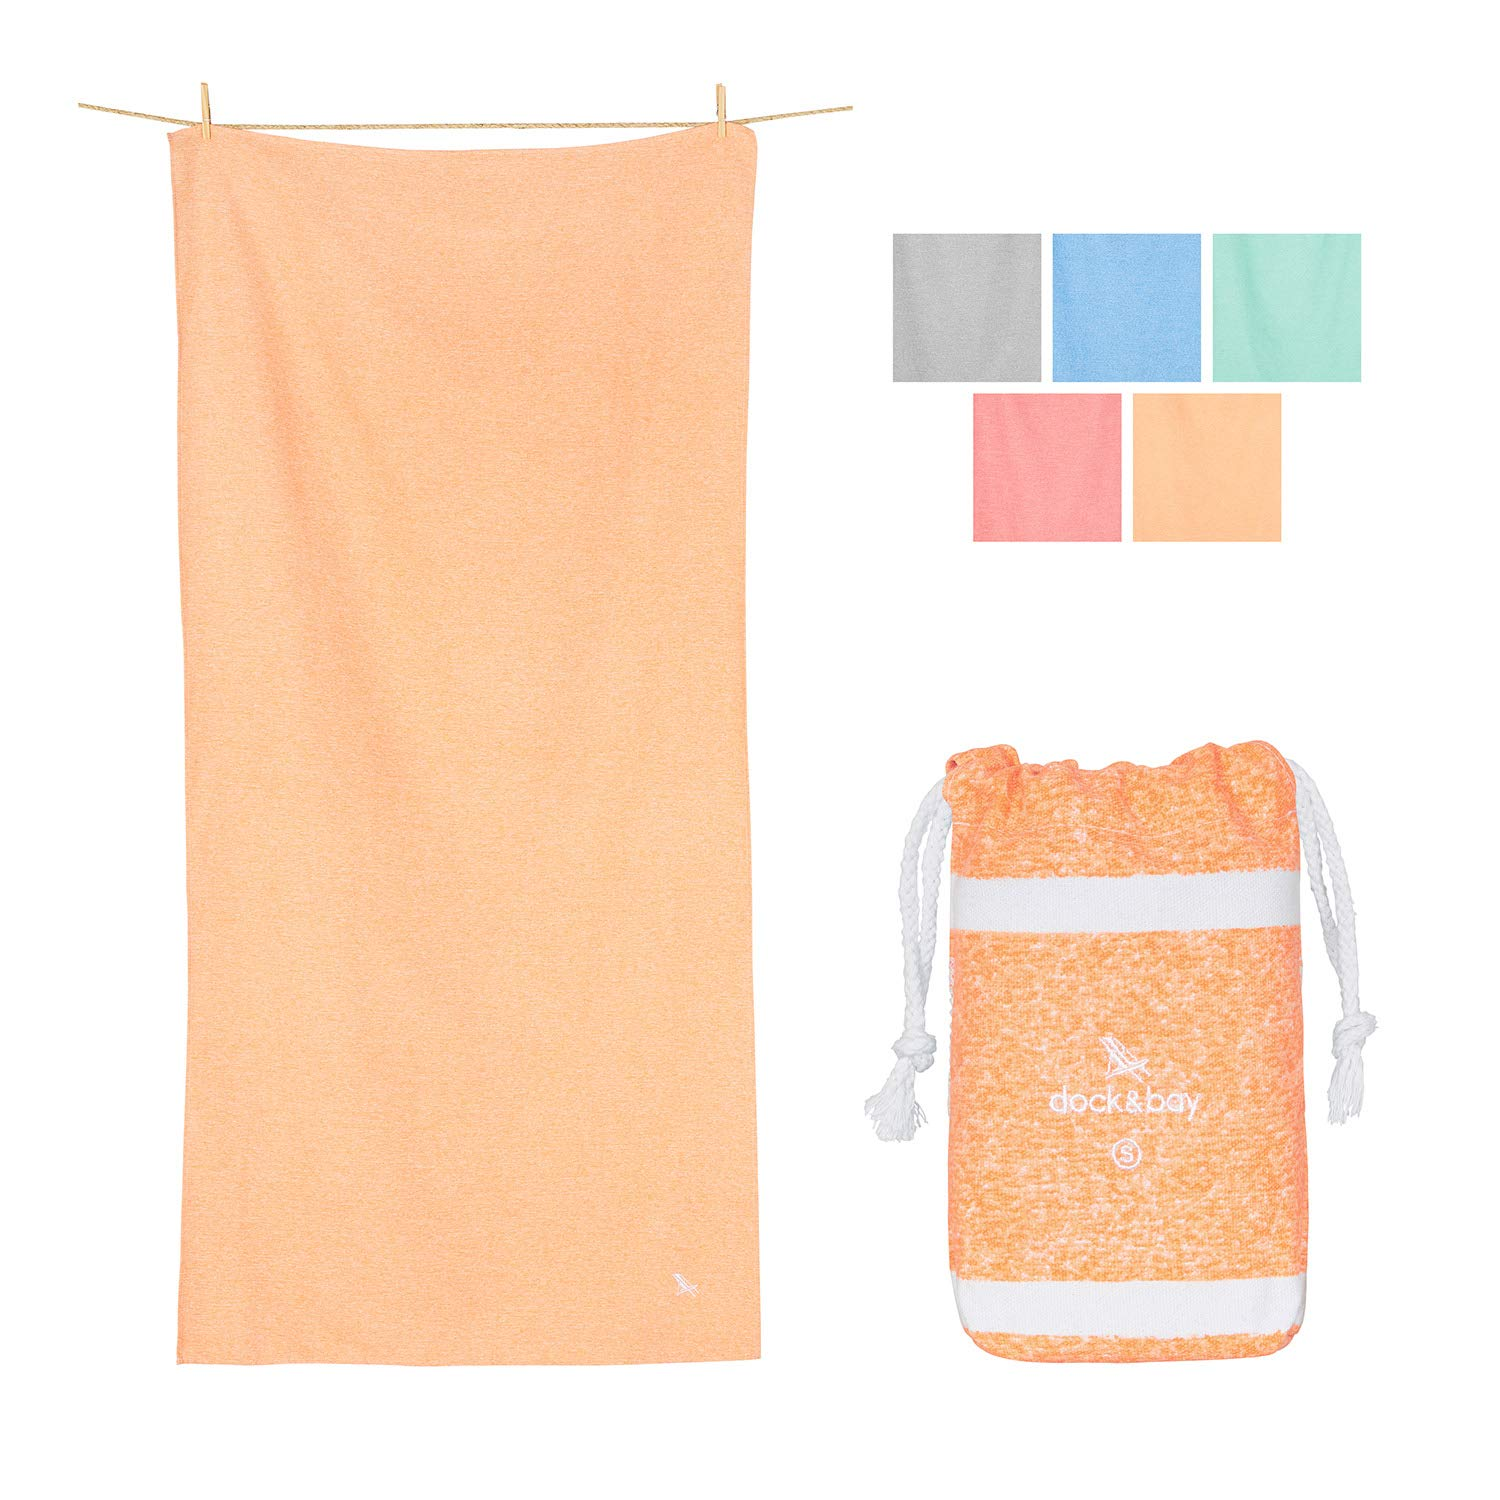 Compact Sports Towel for Gym - Dune Orange, 40 x 20 - Gym, Sports & Workout - Sports Bench Towel, Quick Drying